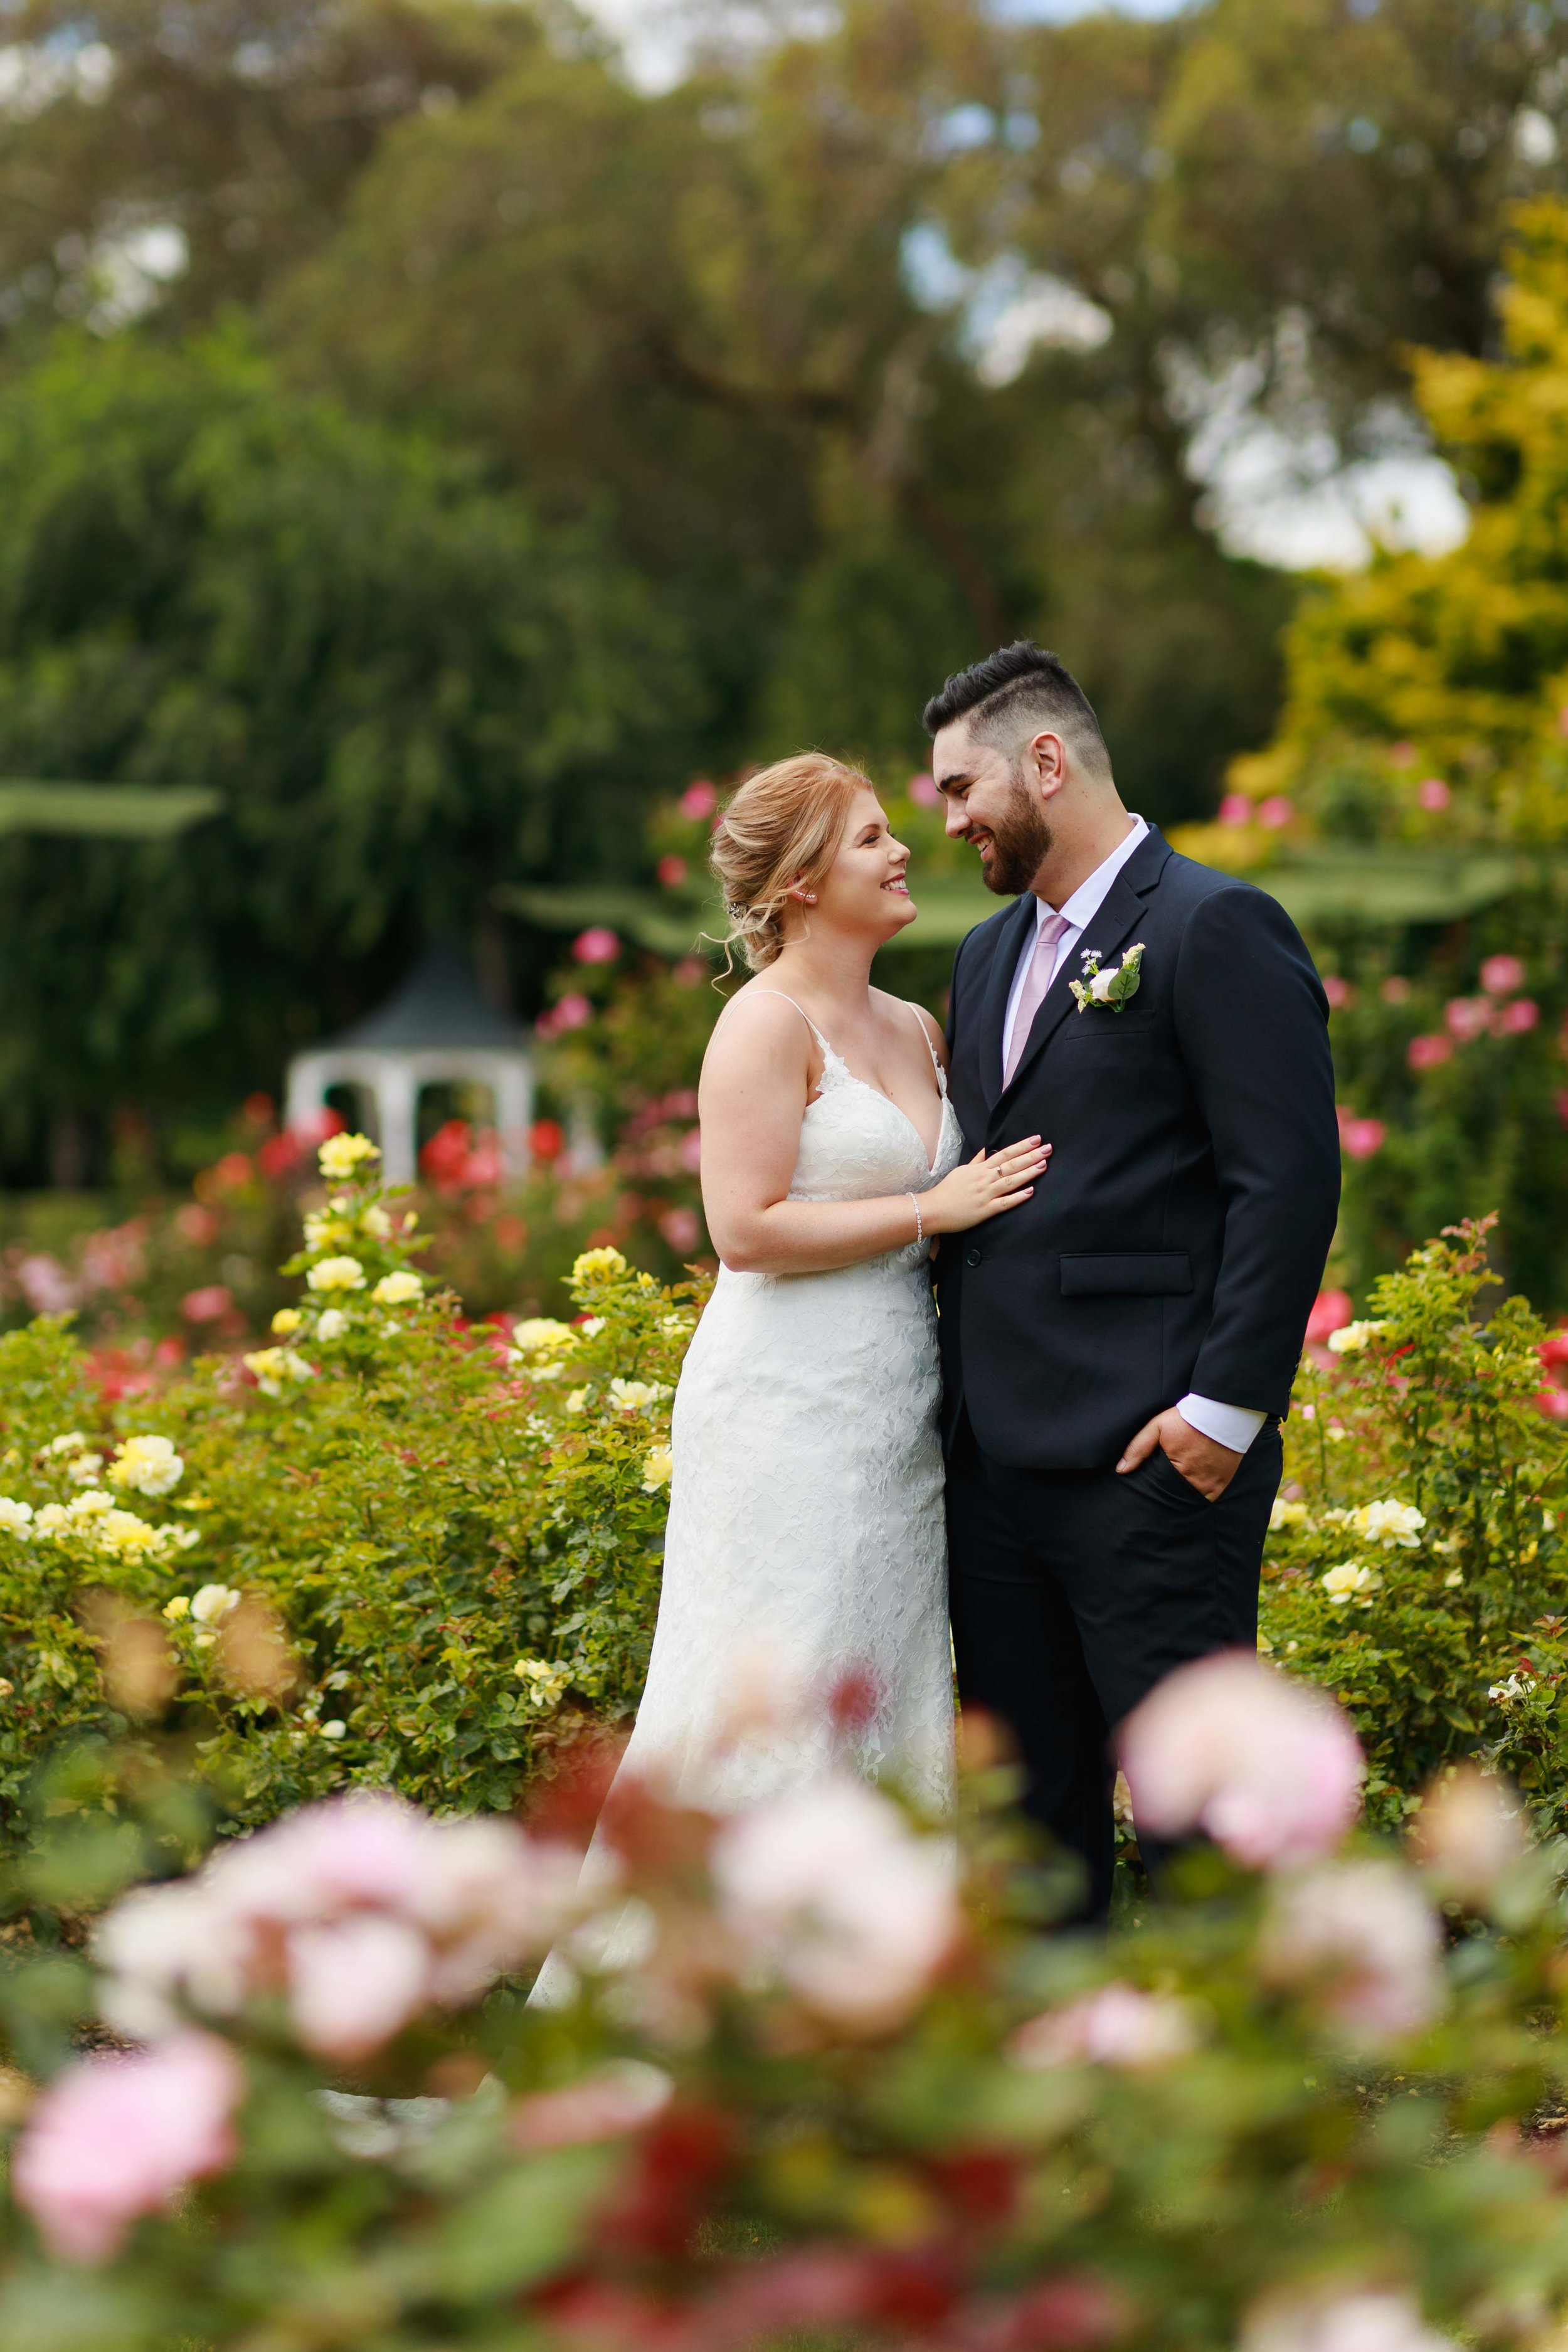 racecourse-highlight-wedding-photography-palmerston-north-42.jpg